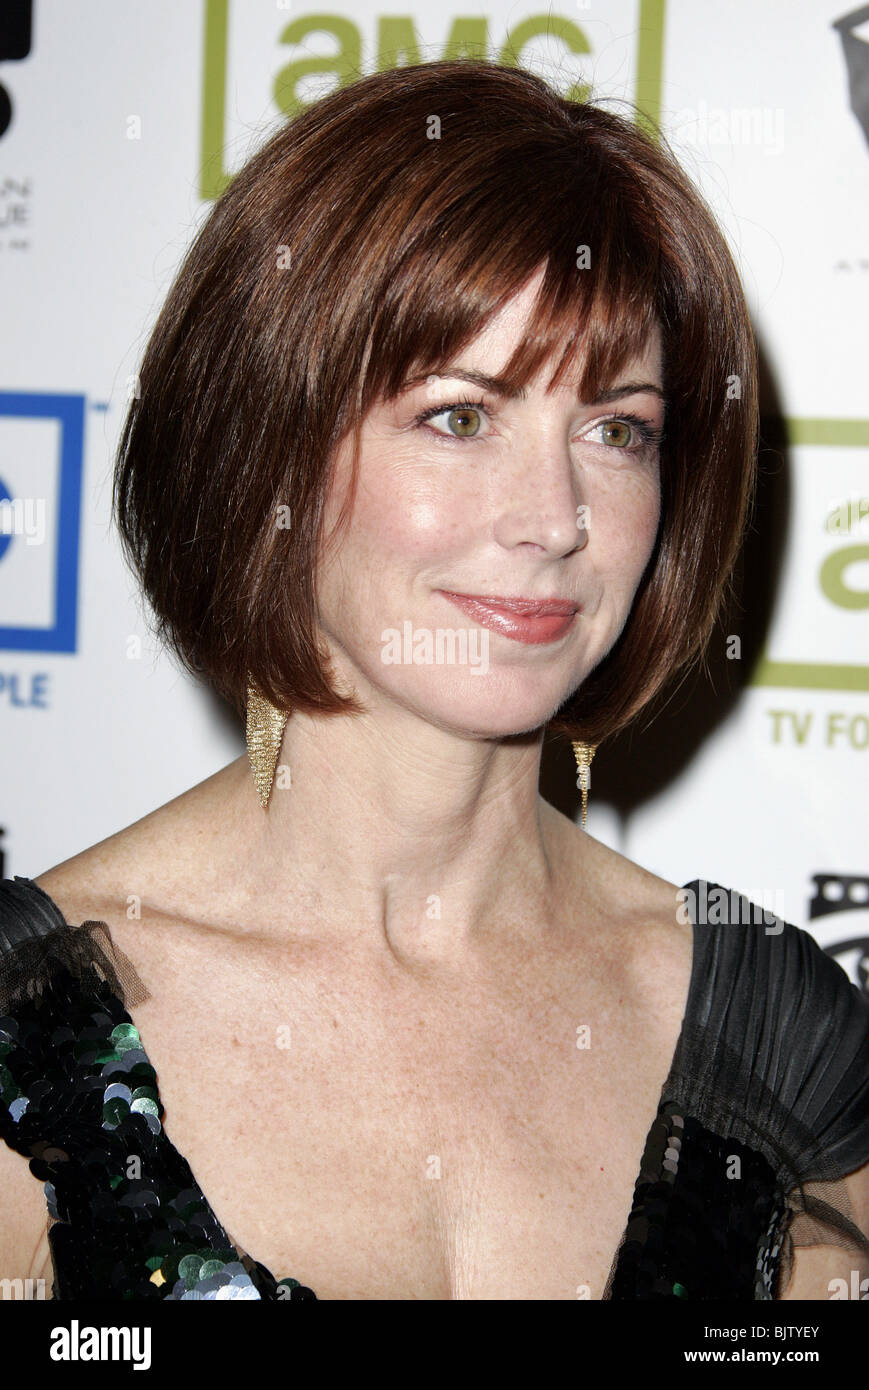 2019 Dana Delany naked (78 photos), Ass, Cleavage, Selfie, legs 2018